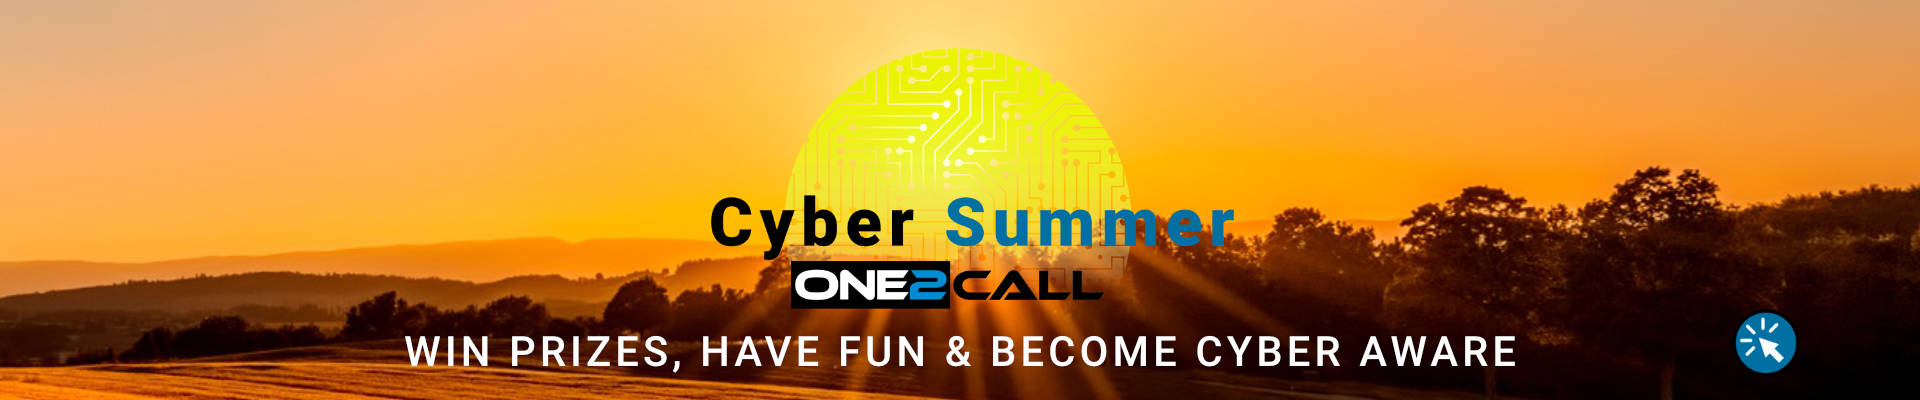 Cyber Summer - Win Prizes, Have Fun & Become Cyber Aware